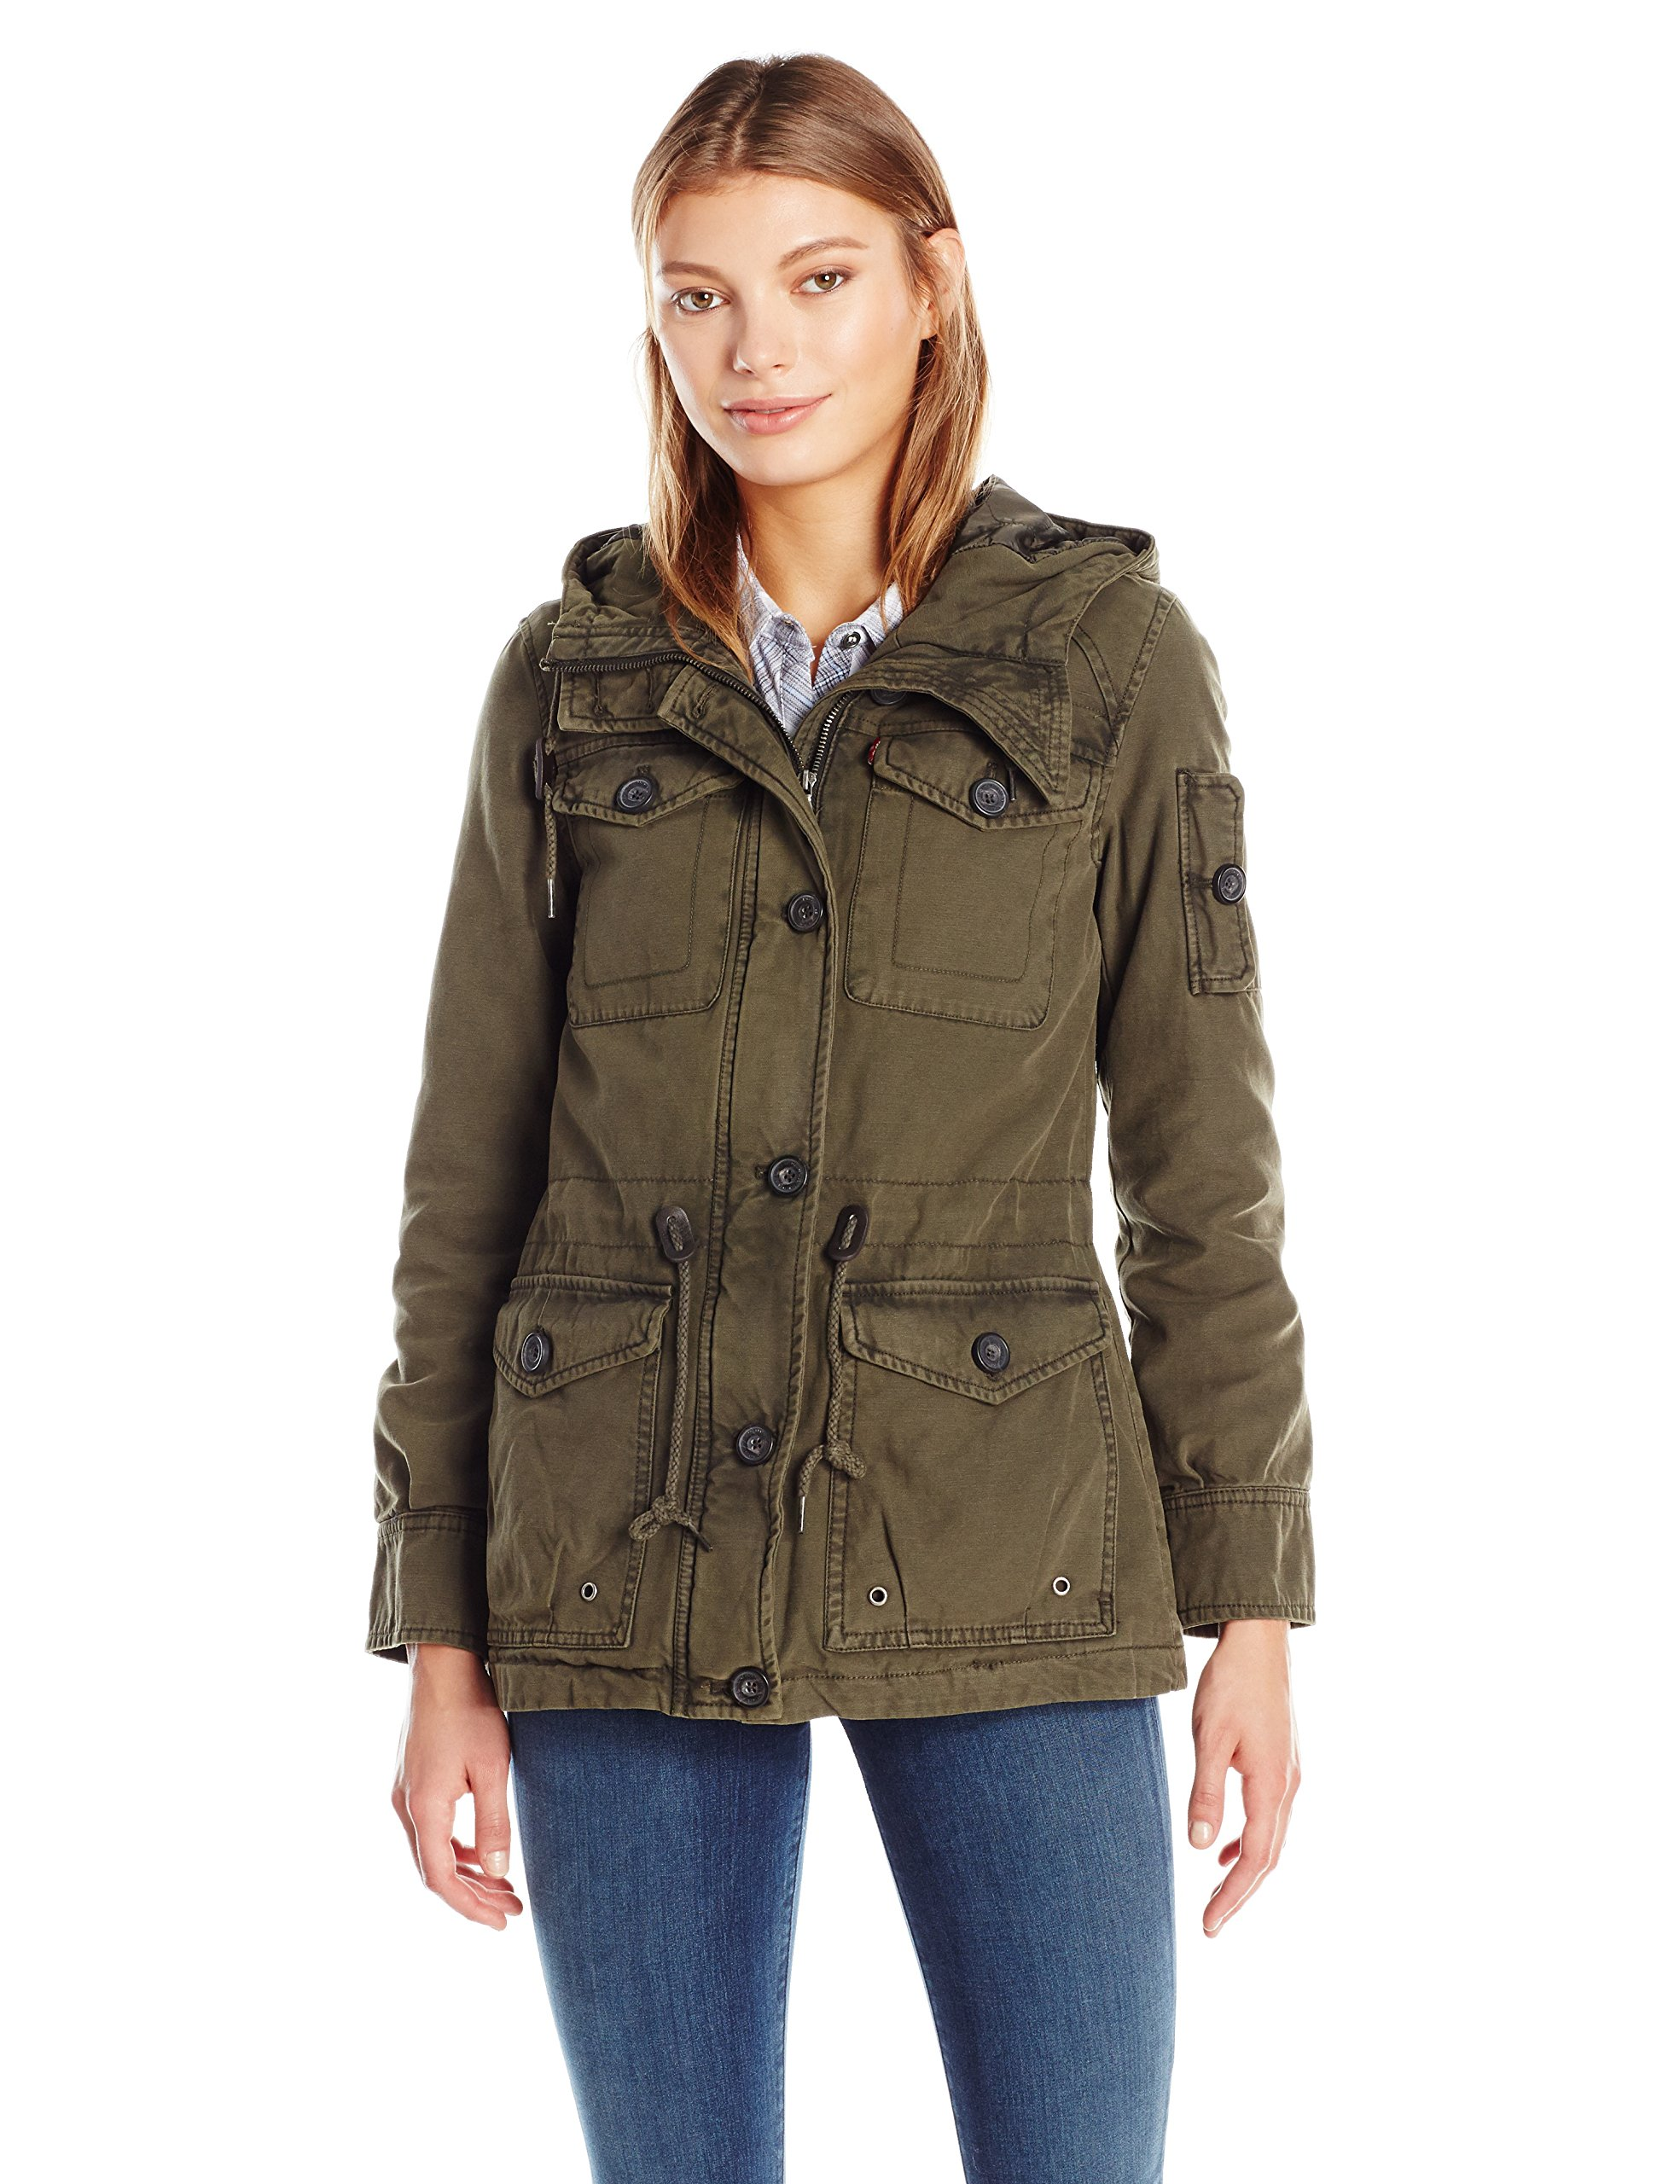 Levi's Women's Cotton Four Pocket Hooded Field Jacket, Army Green, XS